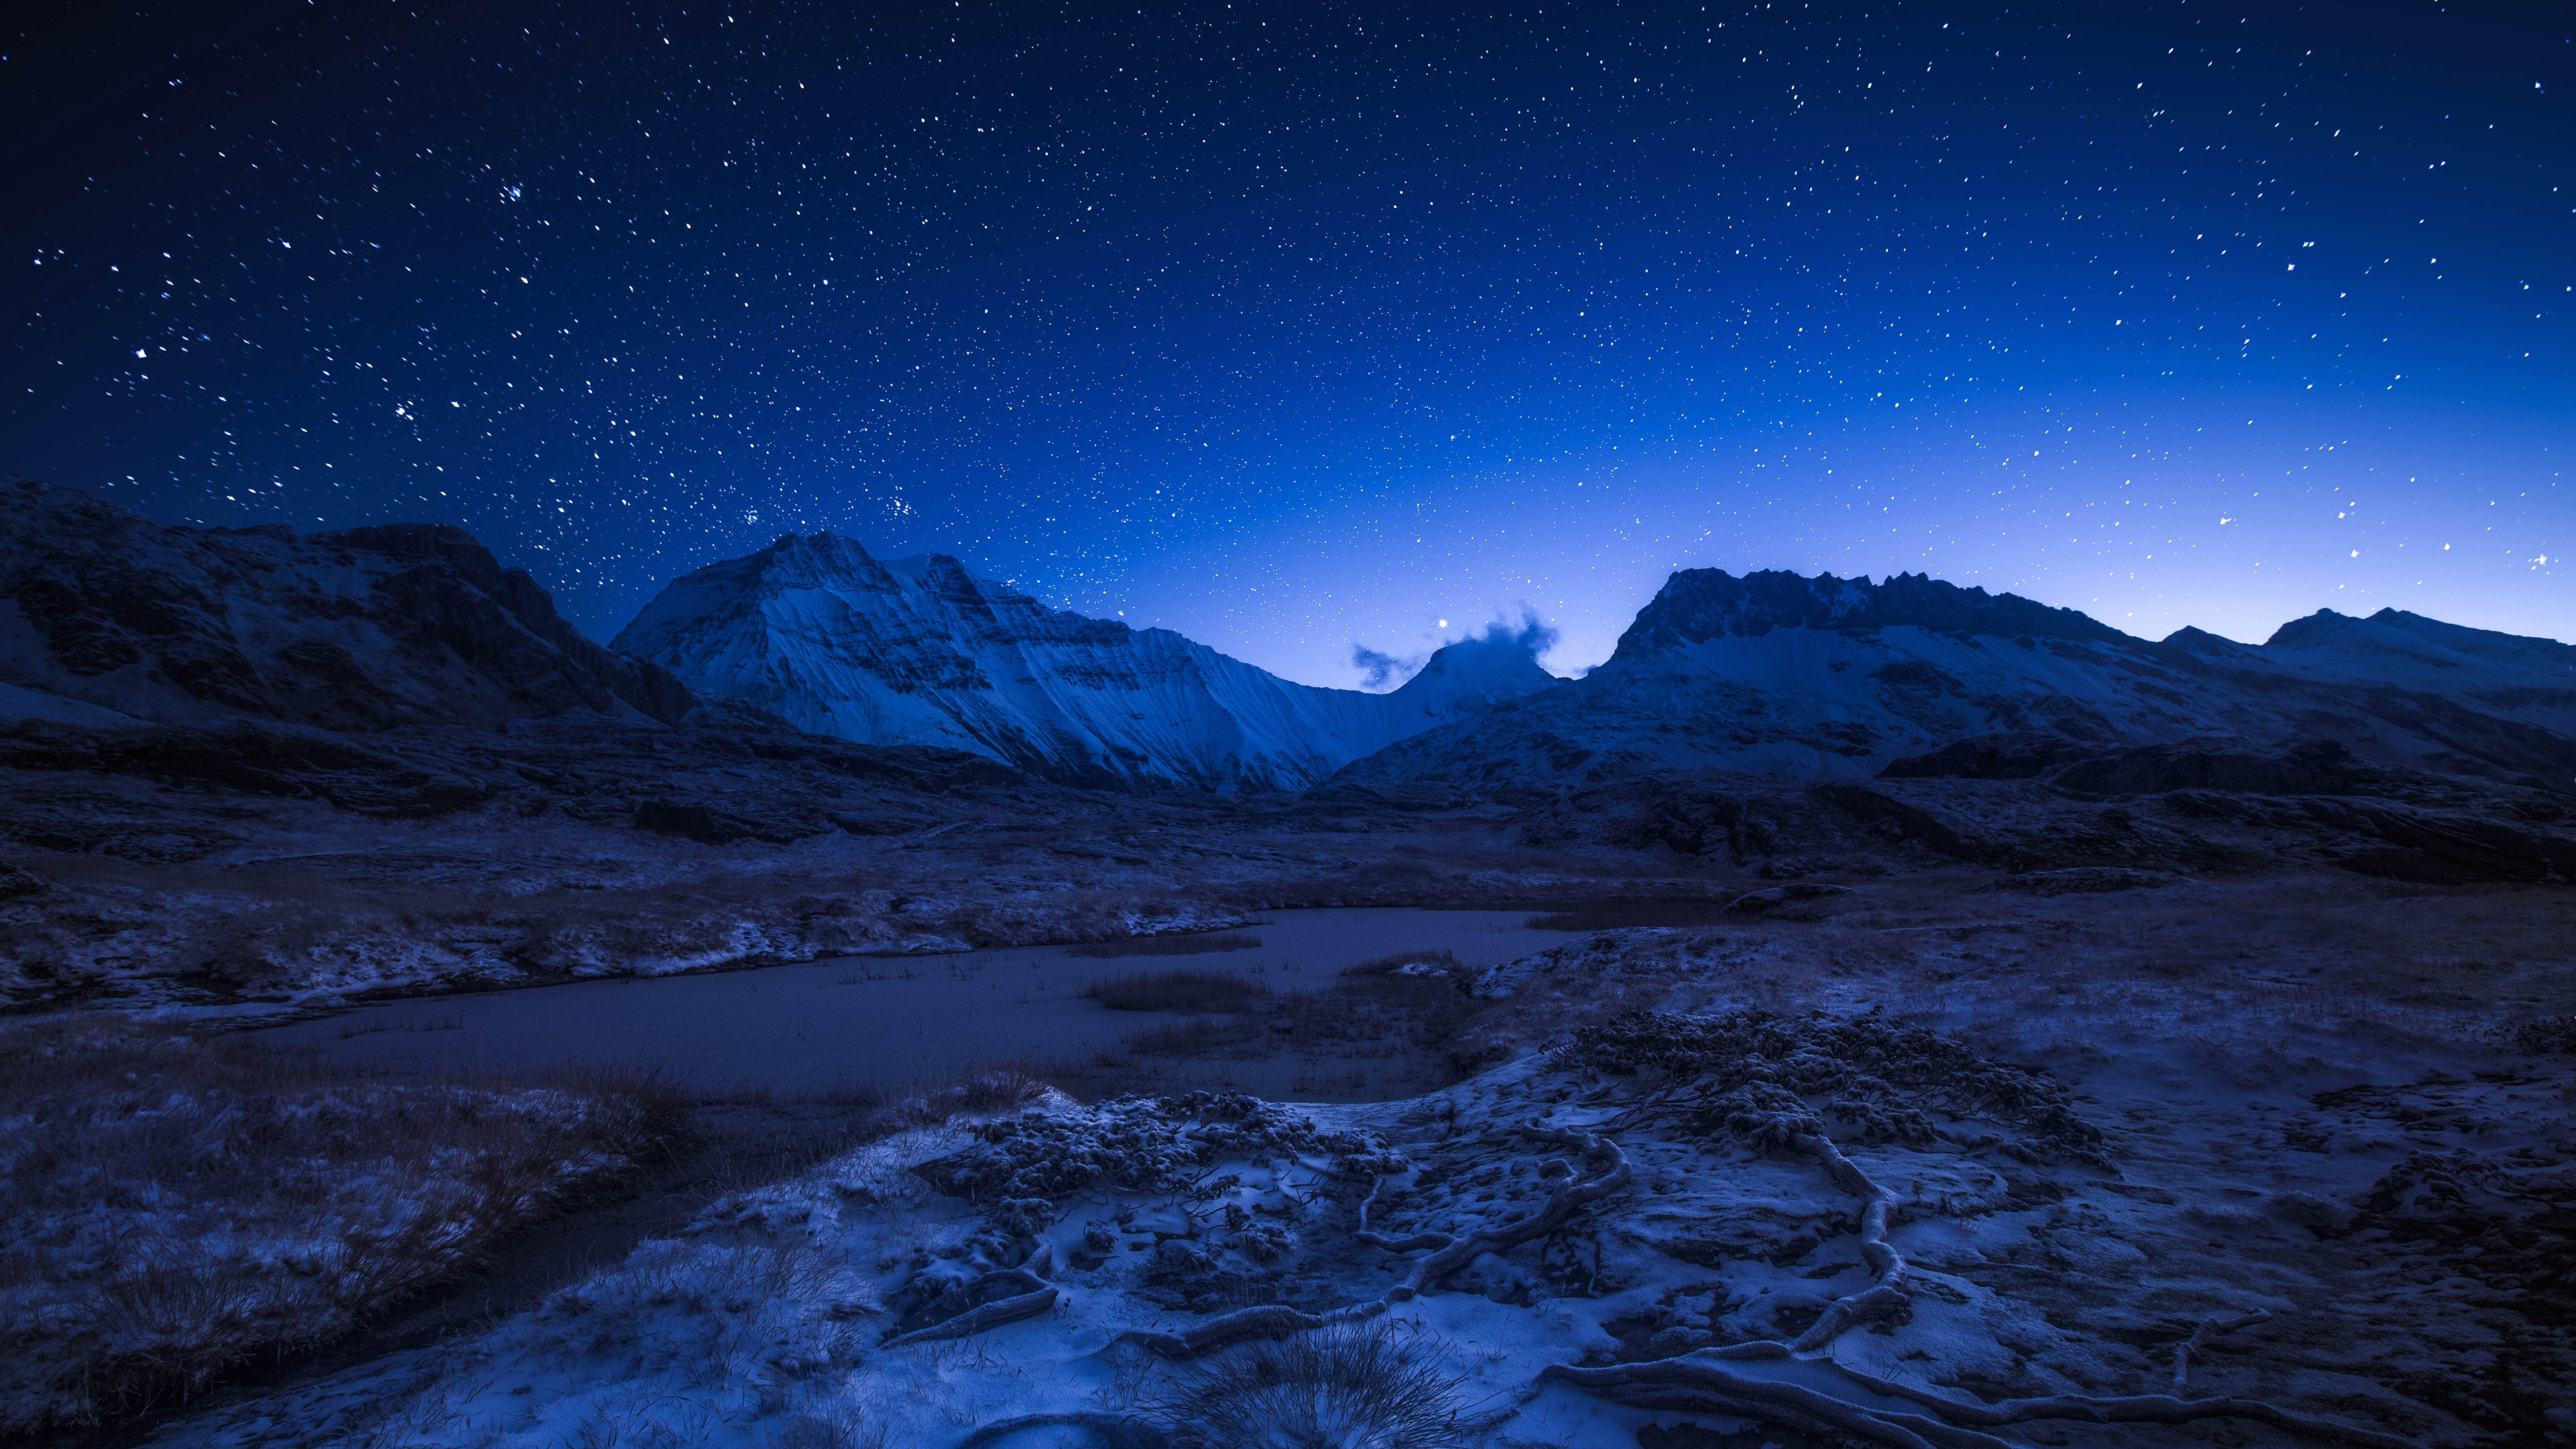 Wallpaper Starry night sky above the snowy mountains